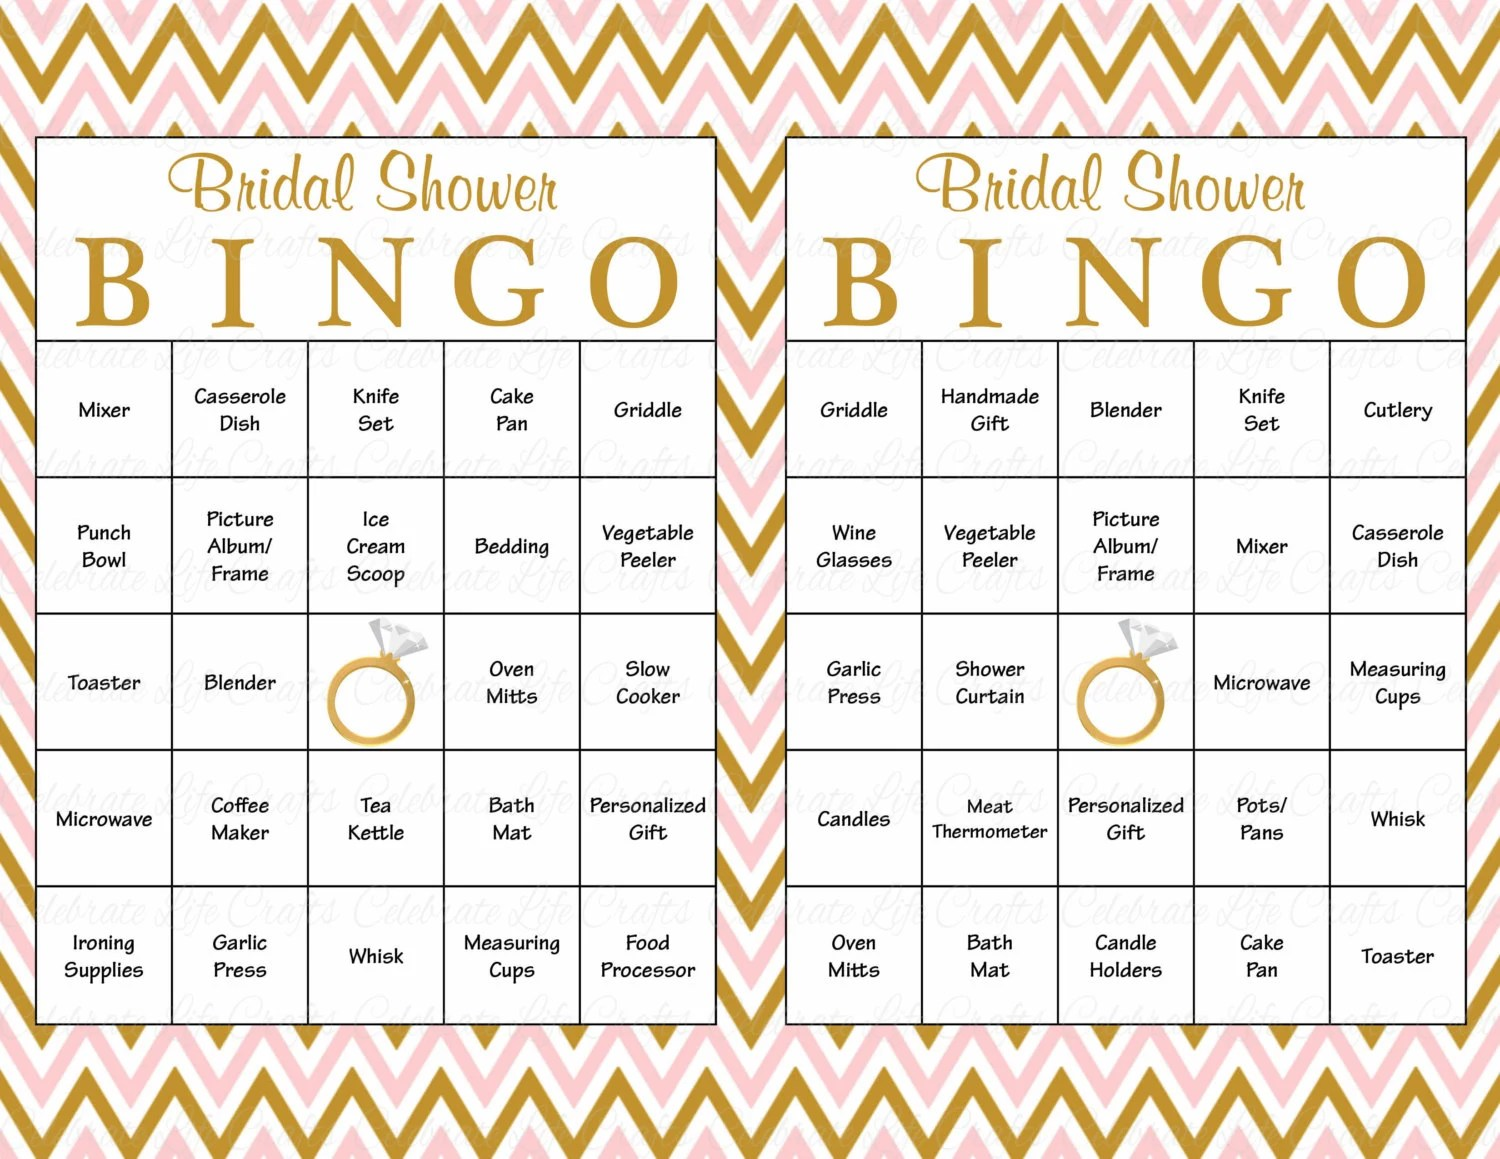 Fullsize Of Bridal Shower Bingo